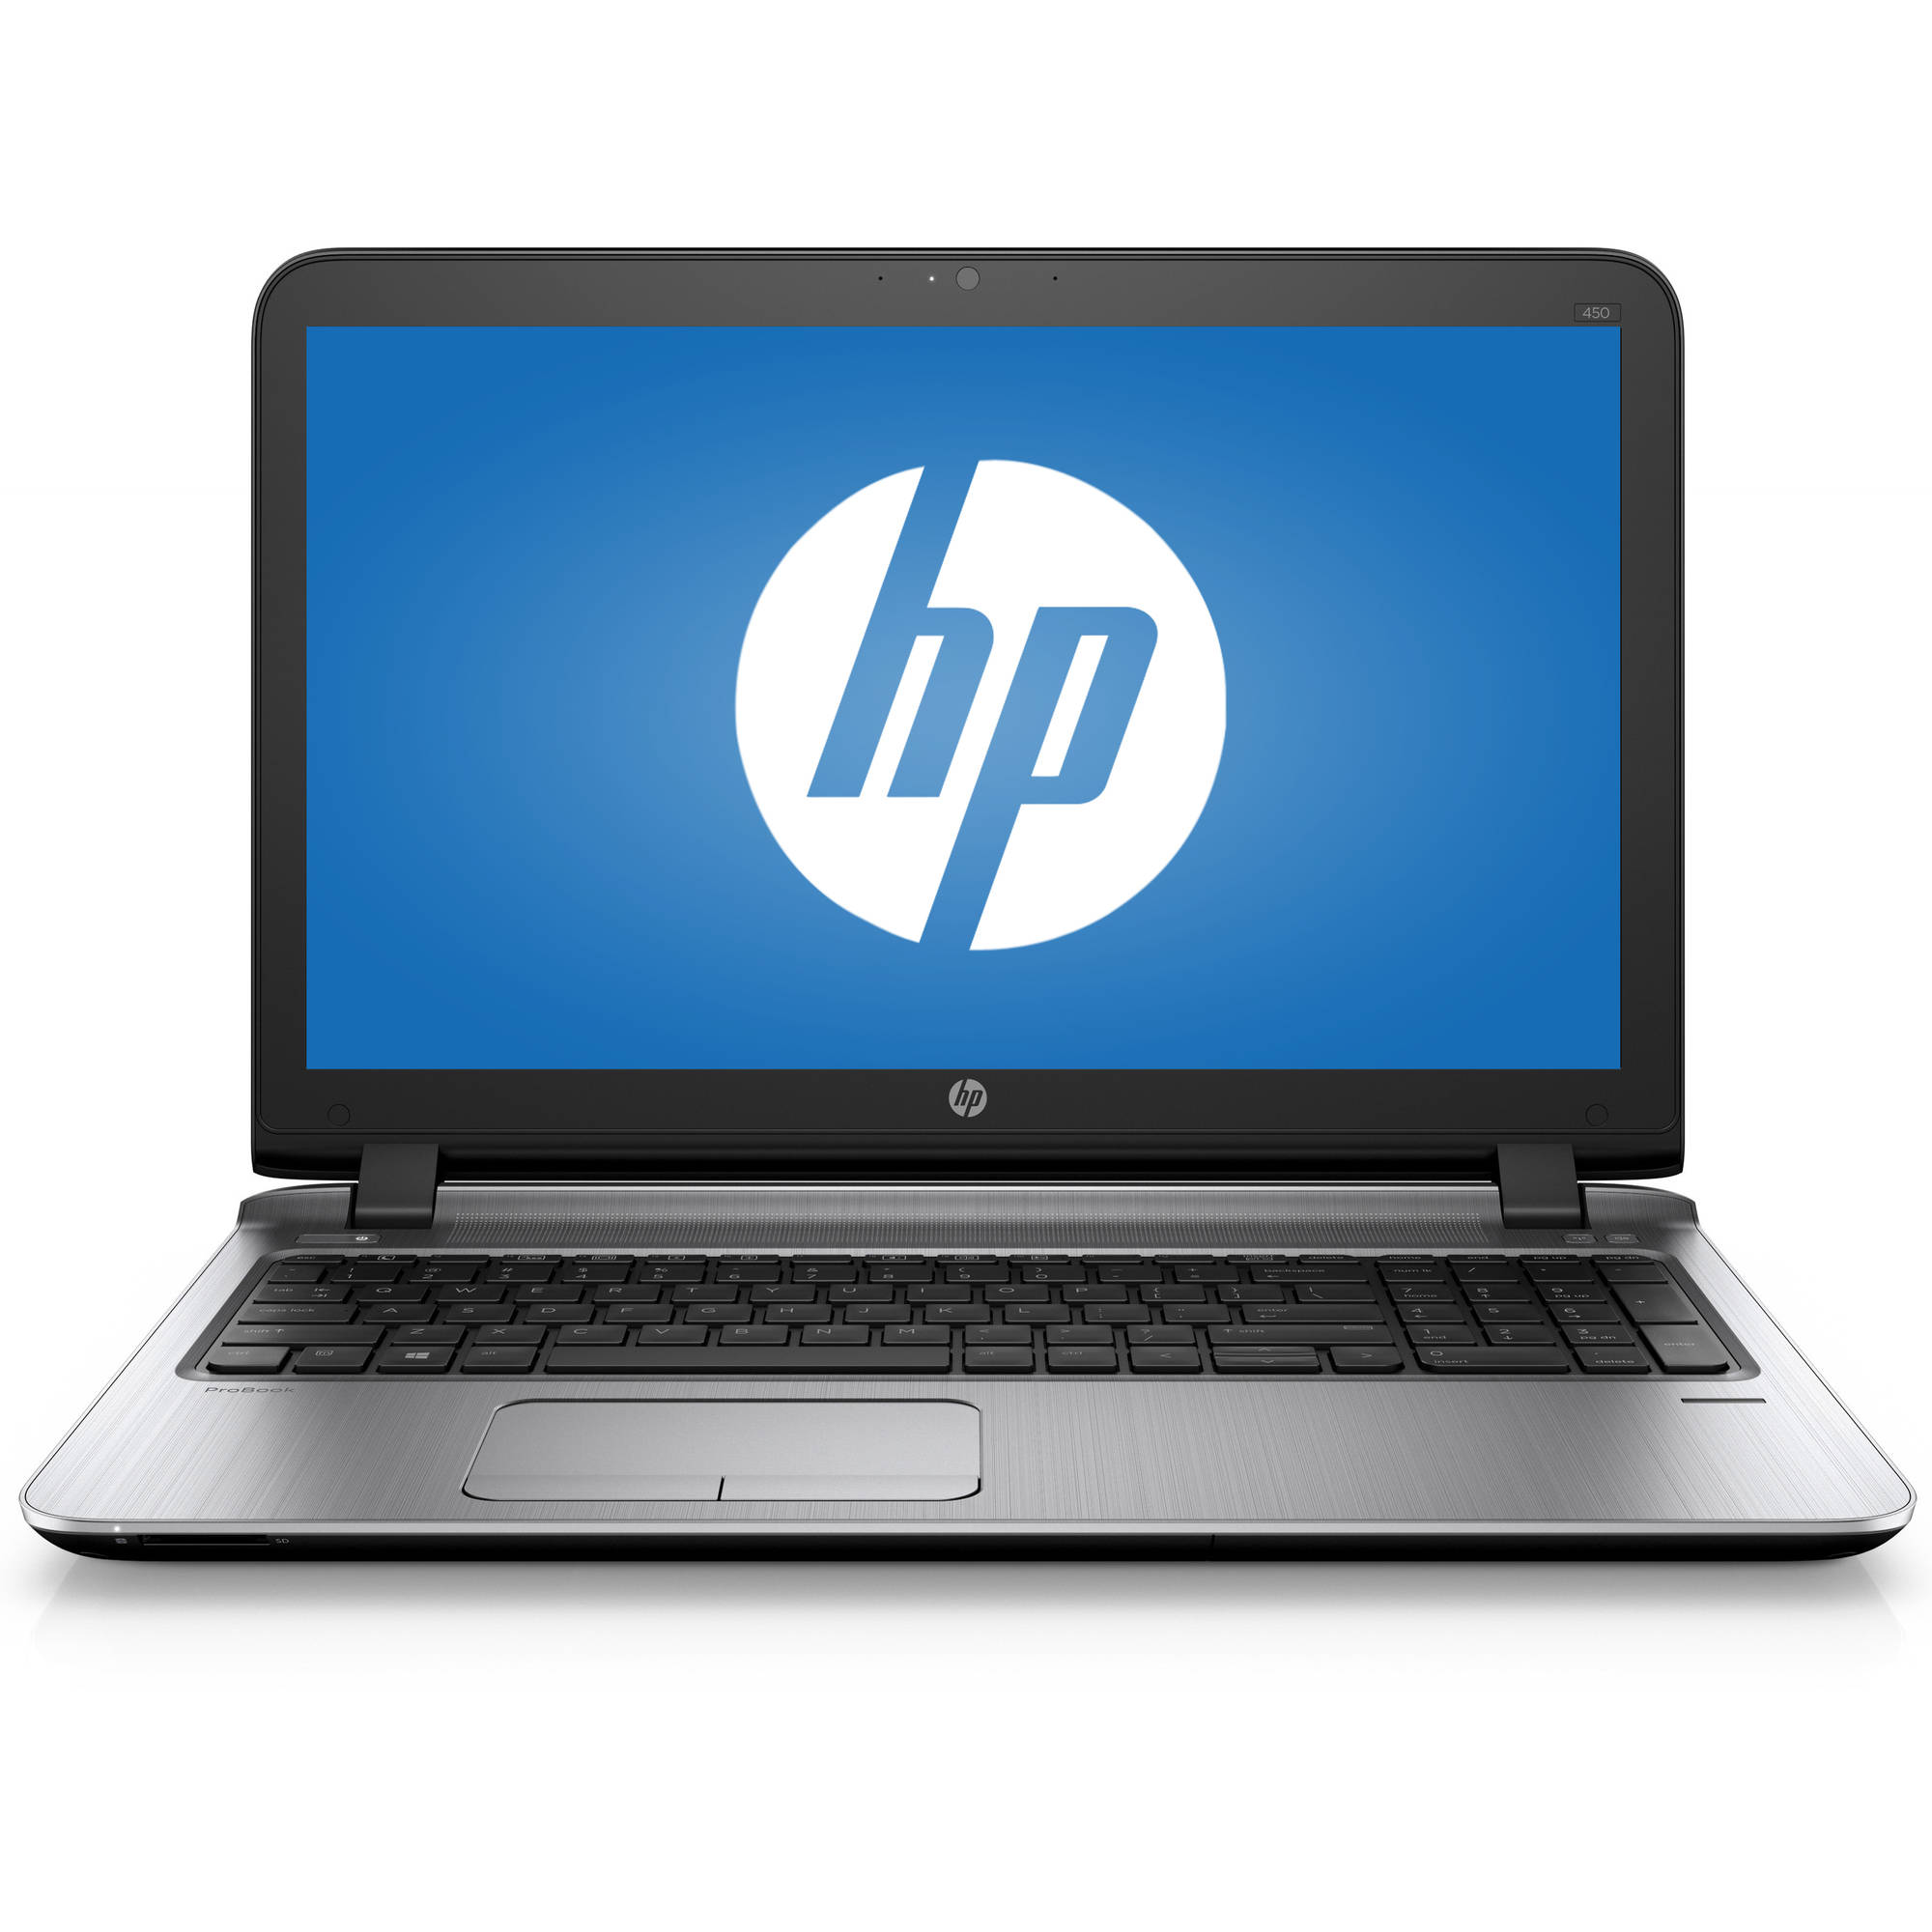 "HP SmartBuy 470 17.3"" Laptop, Windows 7 Professional, Intel Core i7-6500U Processor, 16GB RAM, 256GB Solid State Drive"